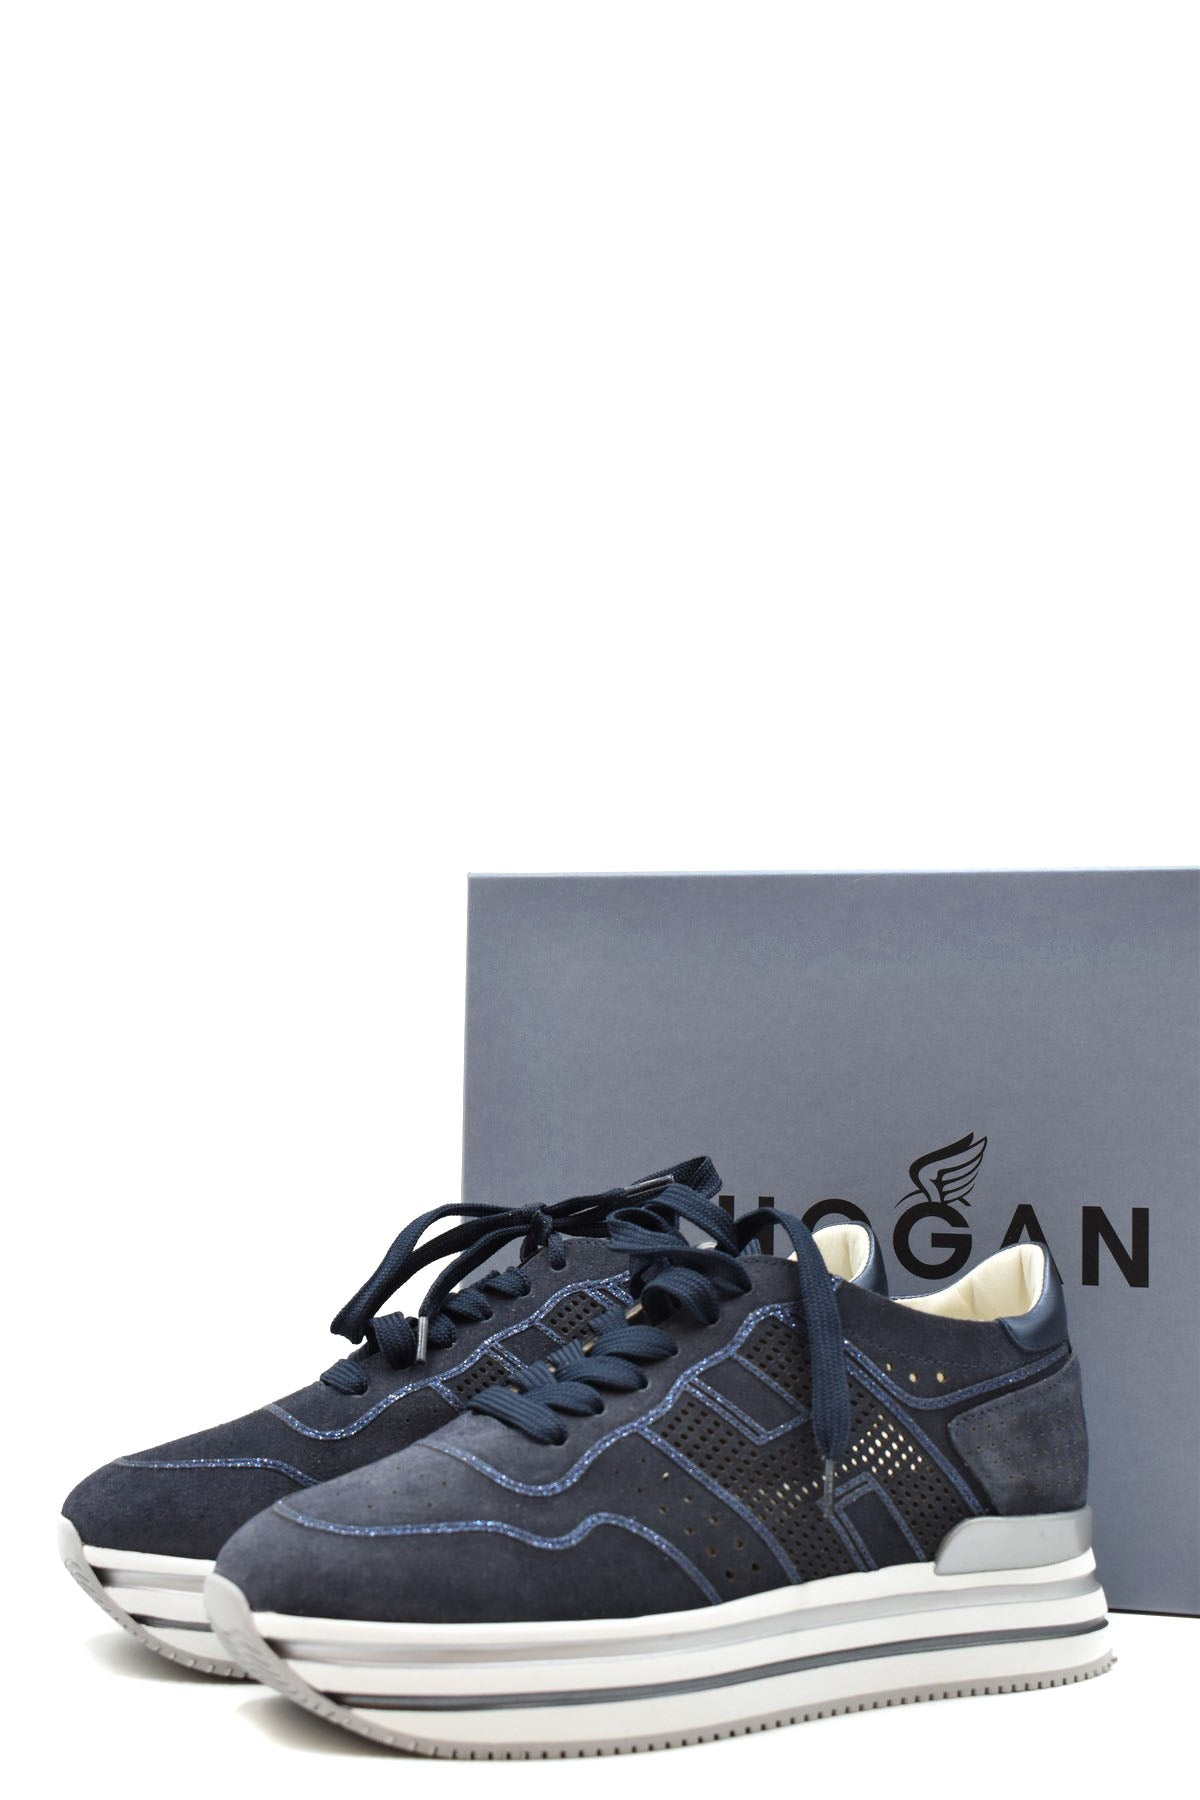 Shoes Hogan-Sports & Entertainment - Sneakers-Product Details Manufacturer Part Number: Hxw4830Cq10Idz0QqvYear: 2020Composition: Leather 100%Size: EuGender: WomanMade In: ItalySeason: Fall / WinterType Of Accessory: ShoesMain Color: BlueTerms: New With Label-Keyomi-Sook